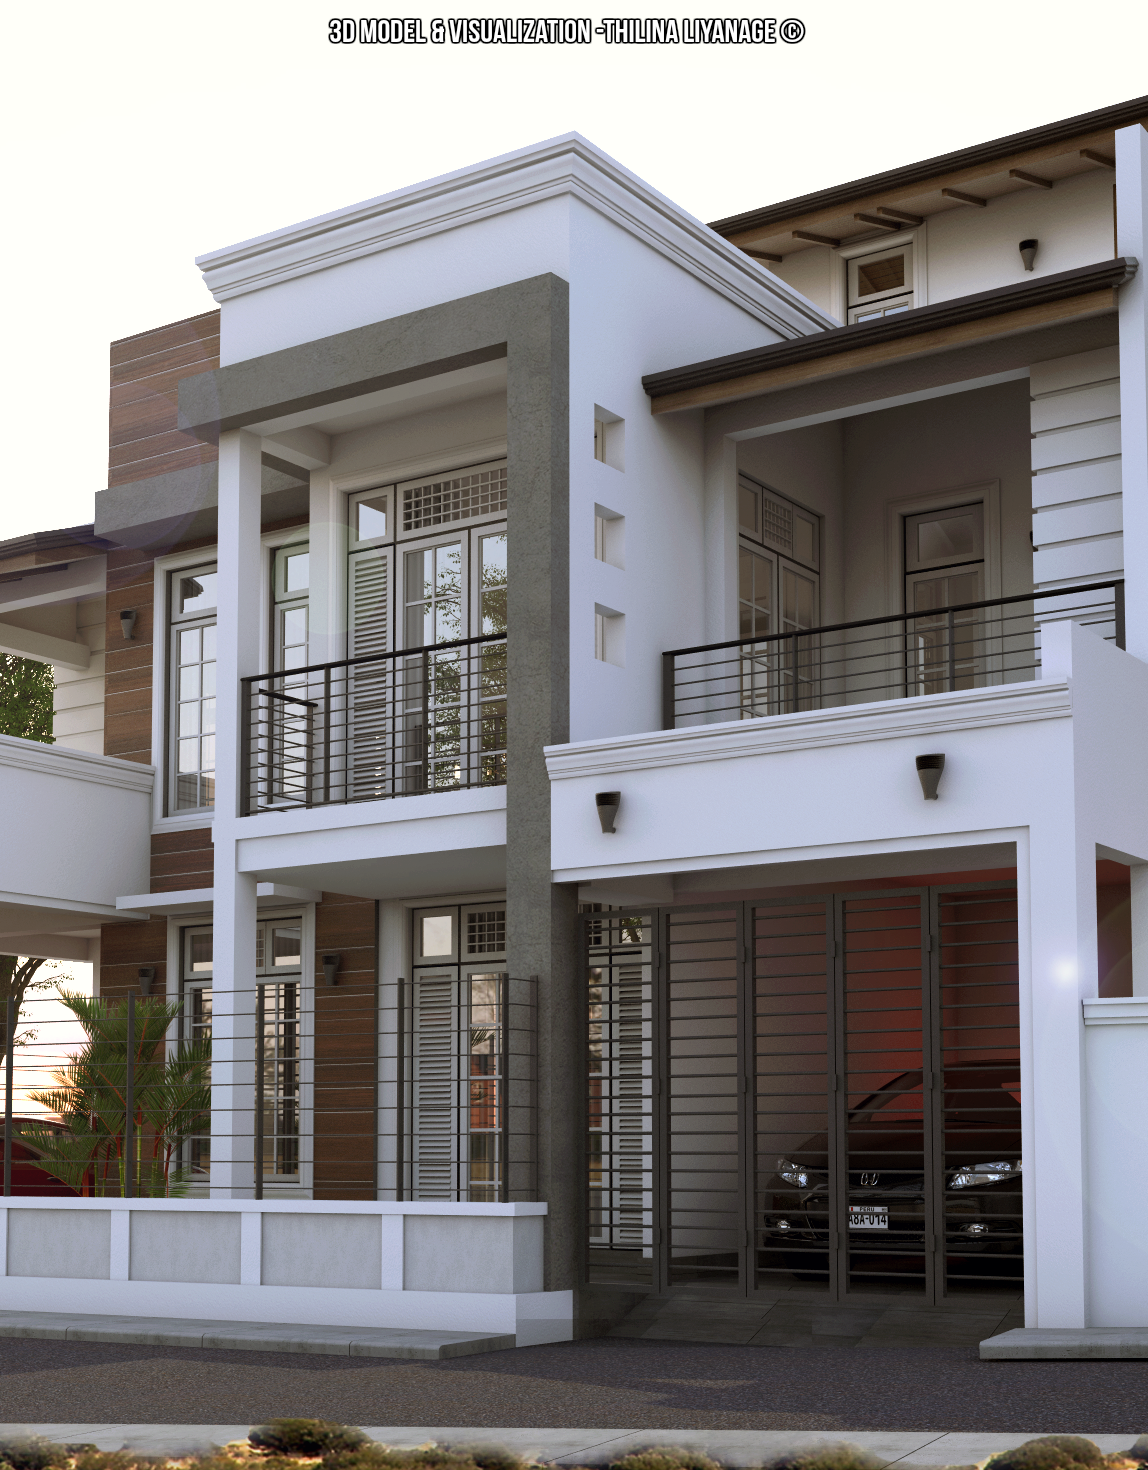 Home Design In Sri Lanka Proposed House At Nugegoda Sri Lanka 3d Model And Visual Made With